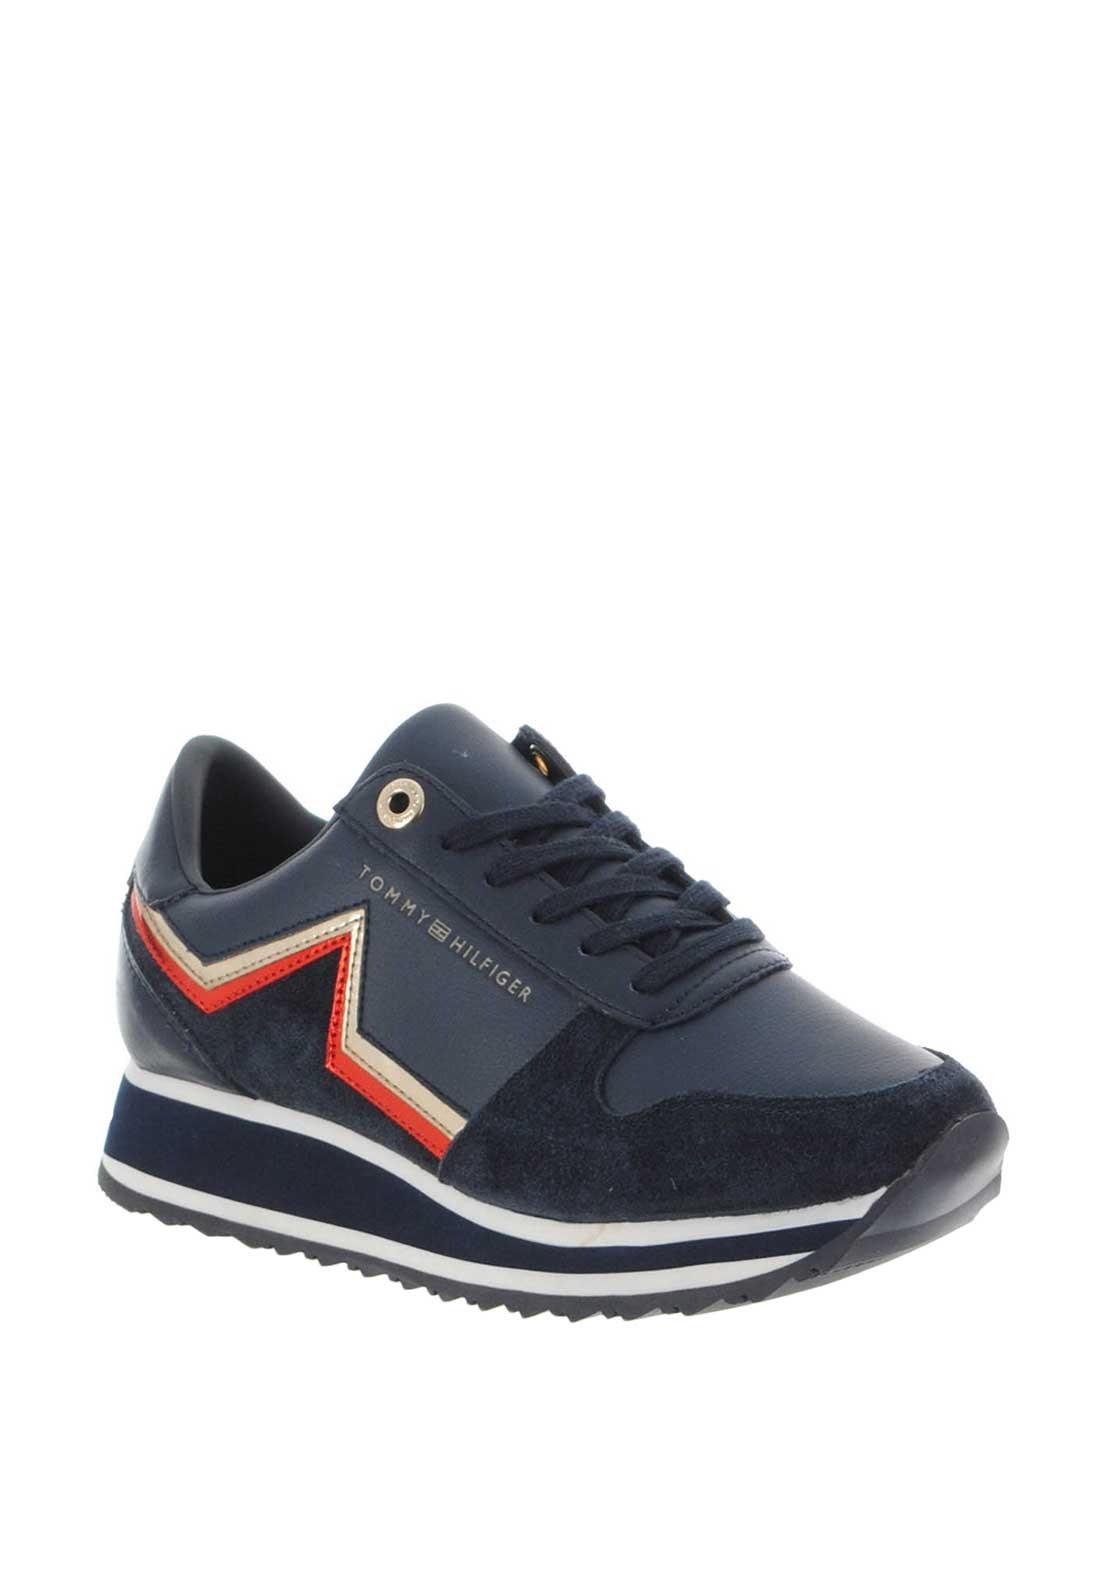 eea09073f158 Tommy Hilfiger Womens Leather Star Trainers